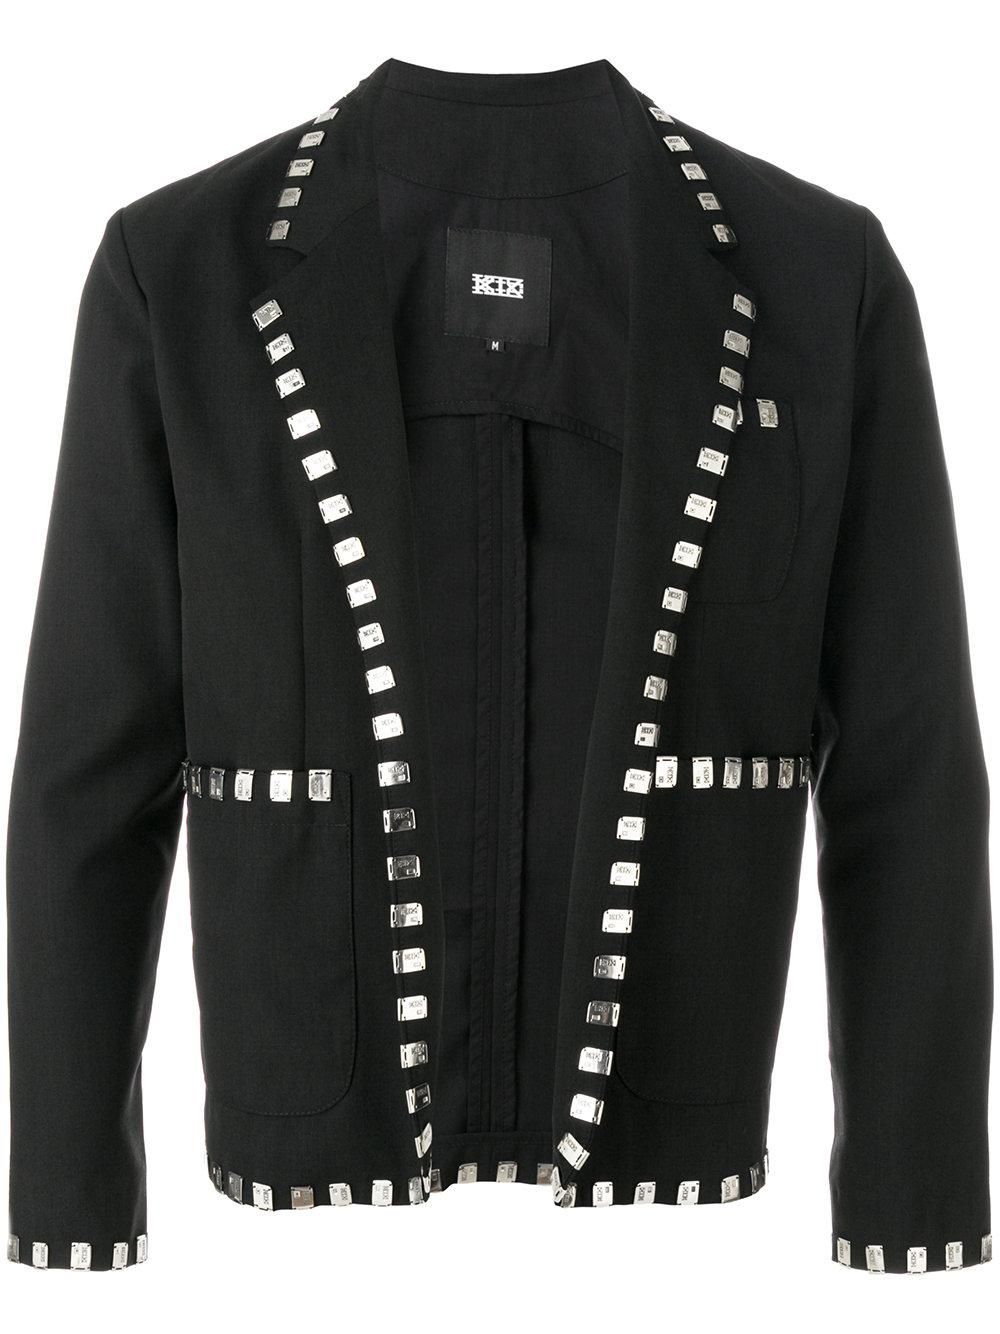 Ktz Lighter Clip Jacket - Black